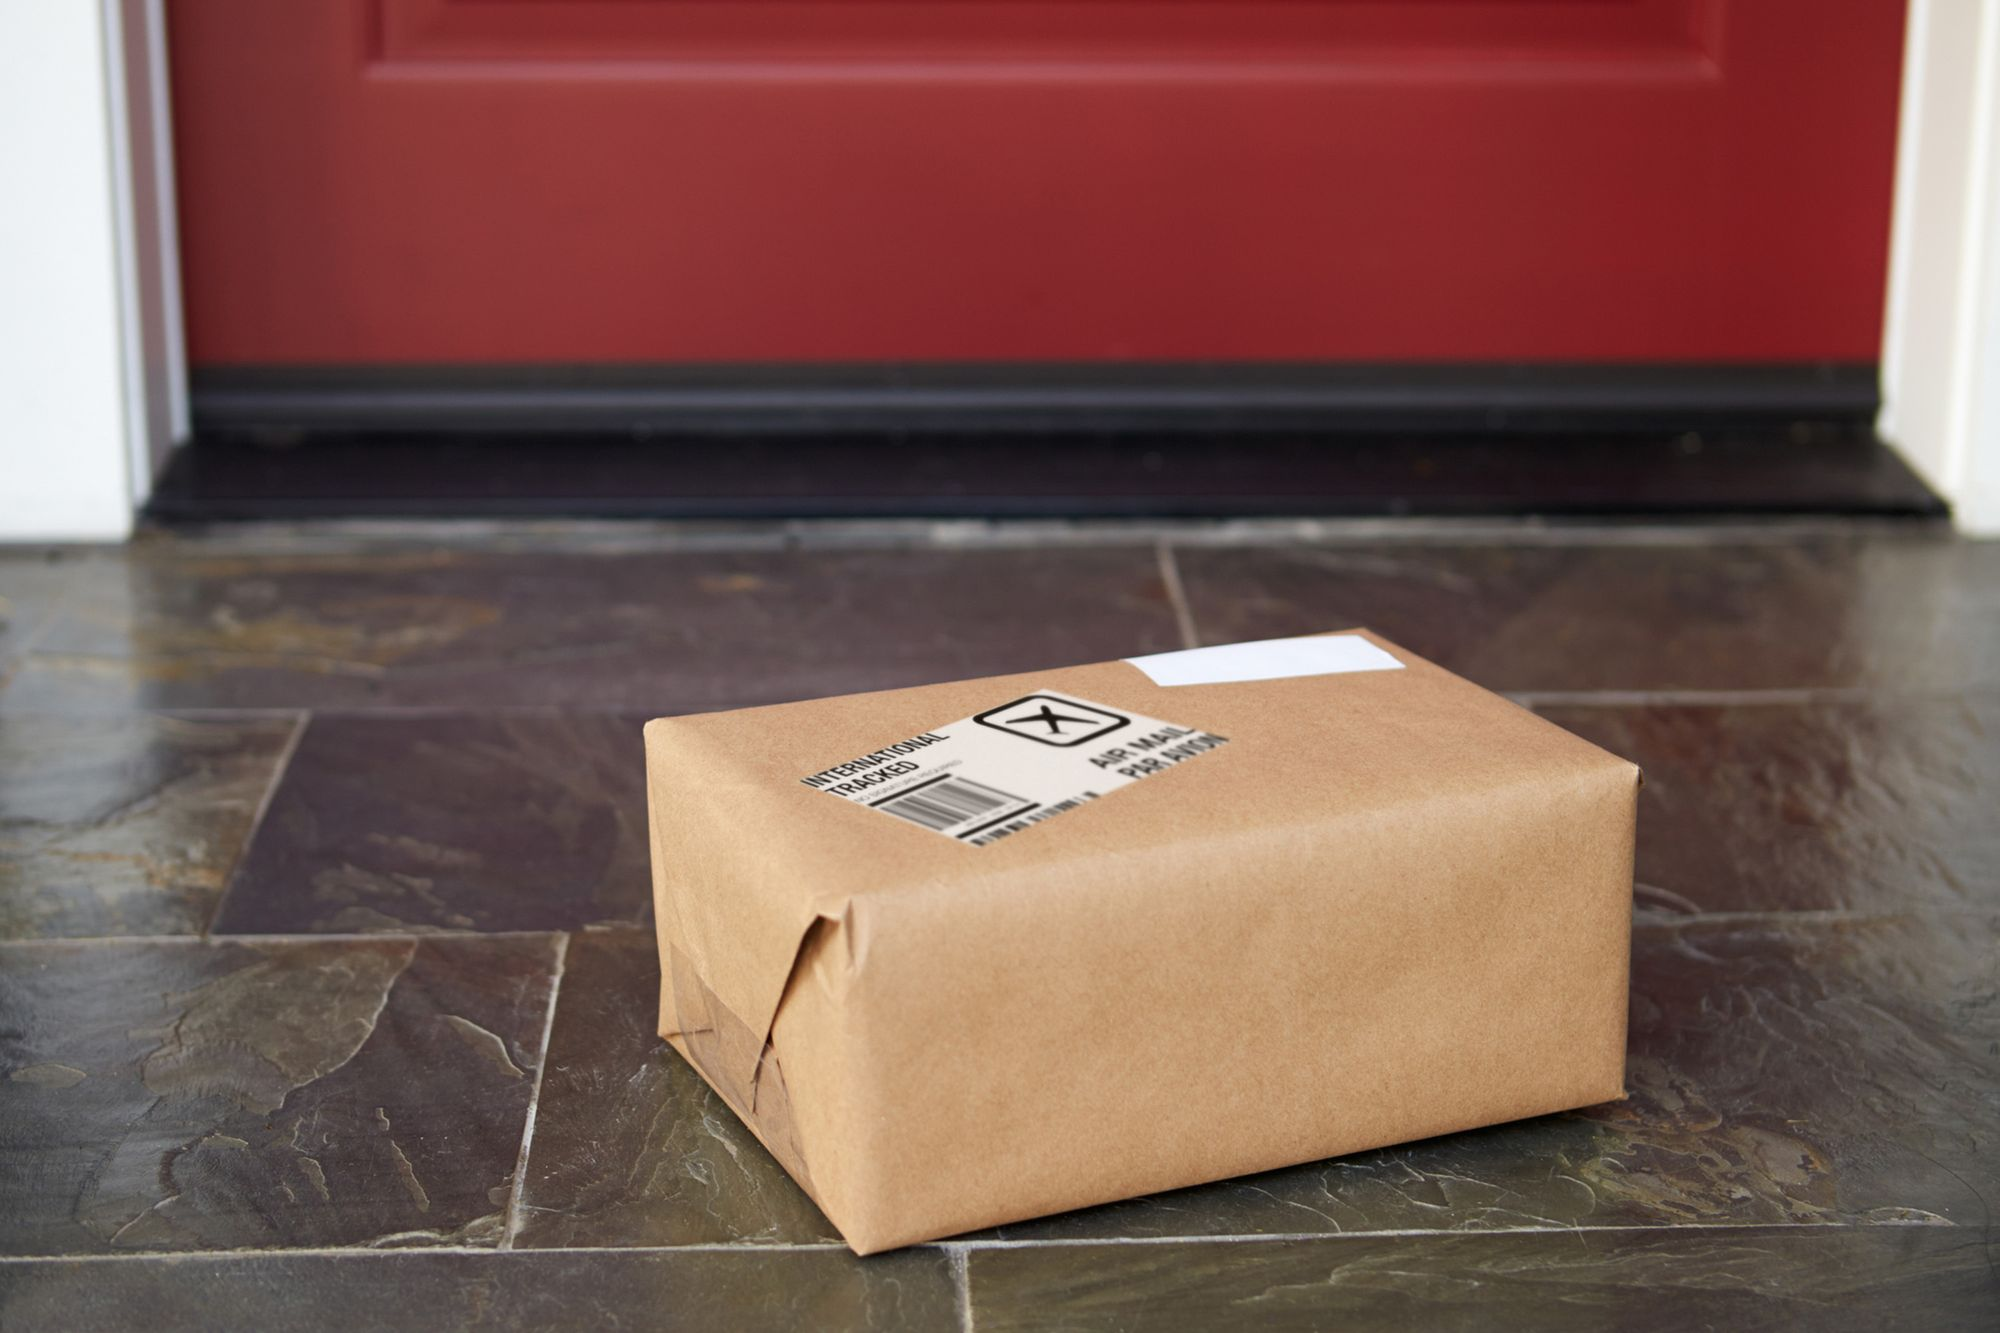 Onfleet ensures all packages arrive safely through Proof of Delivery features